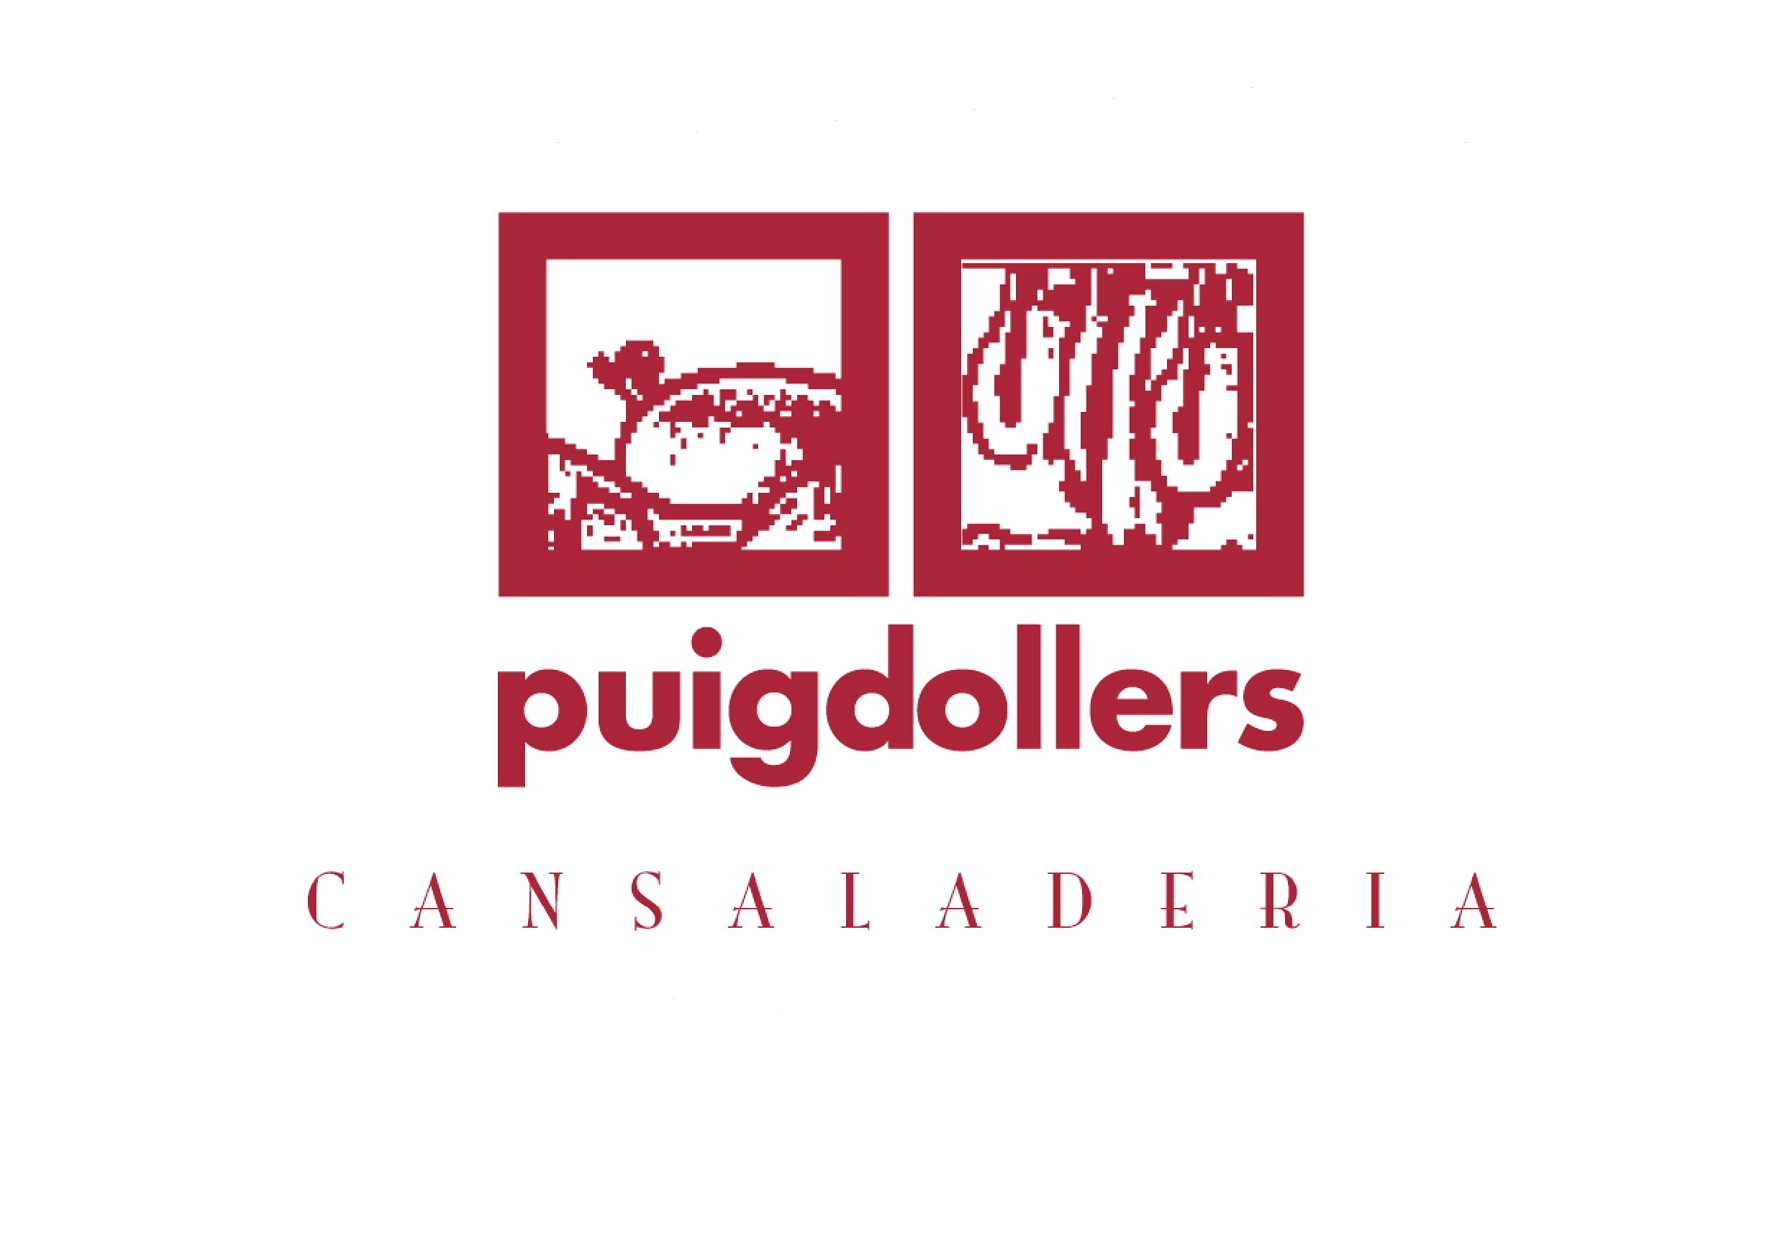 CANSALADERIA PUIGDOLLERS